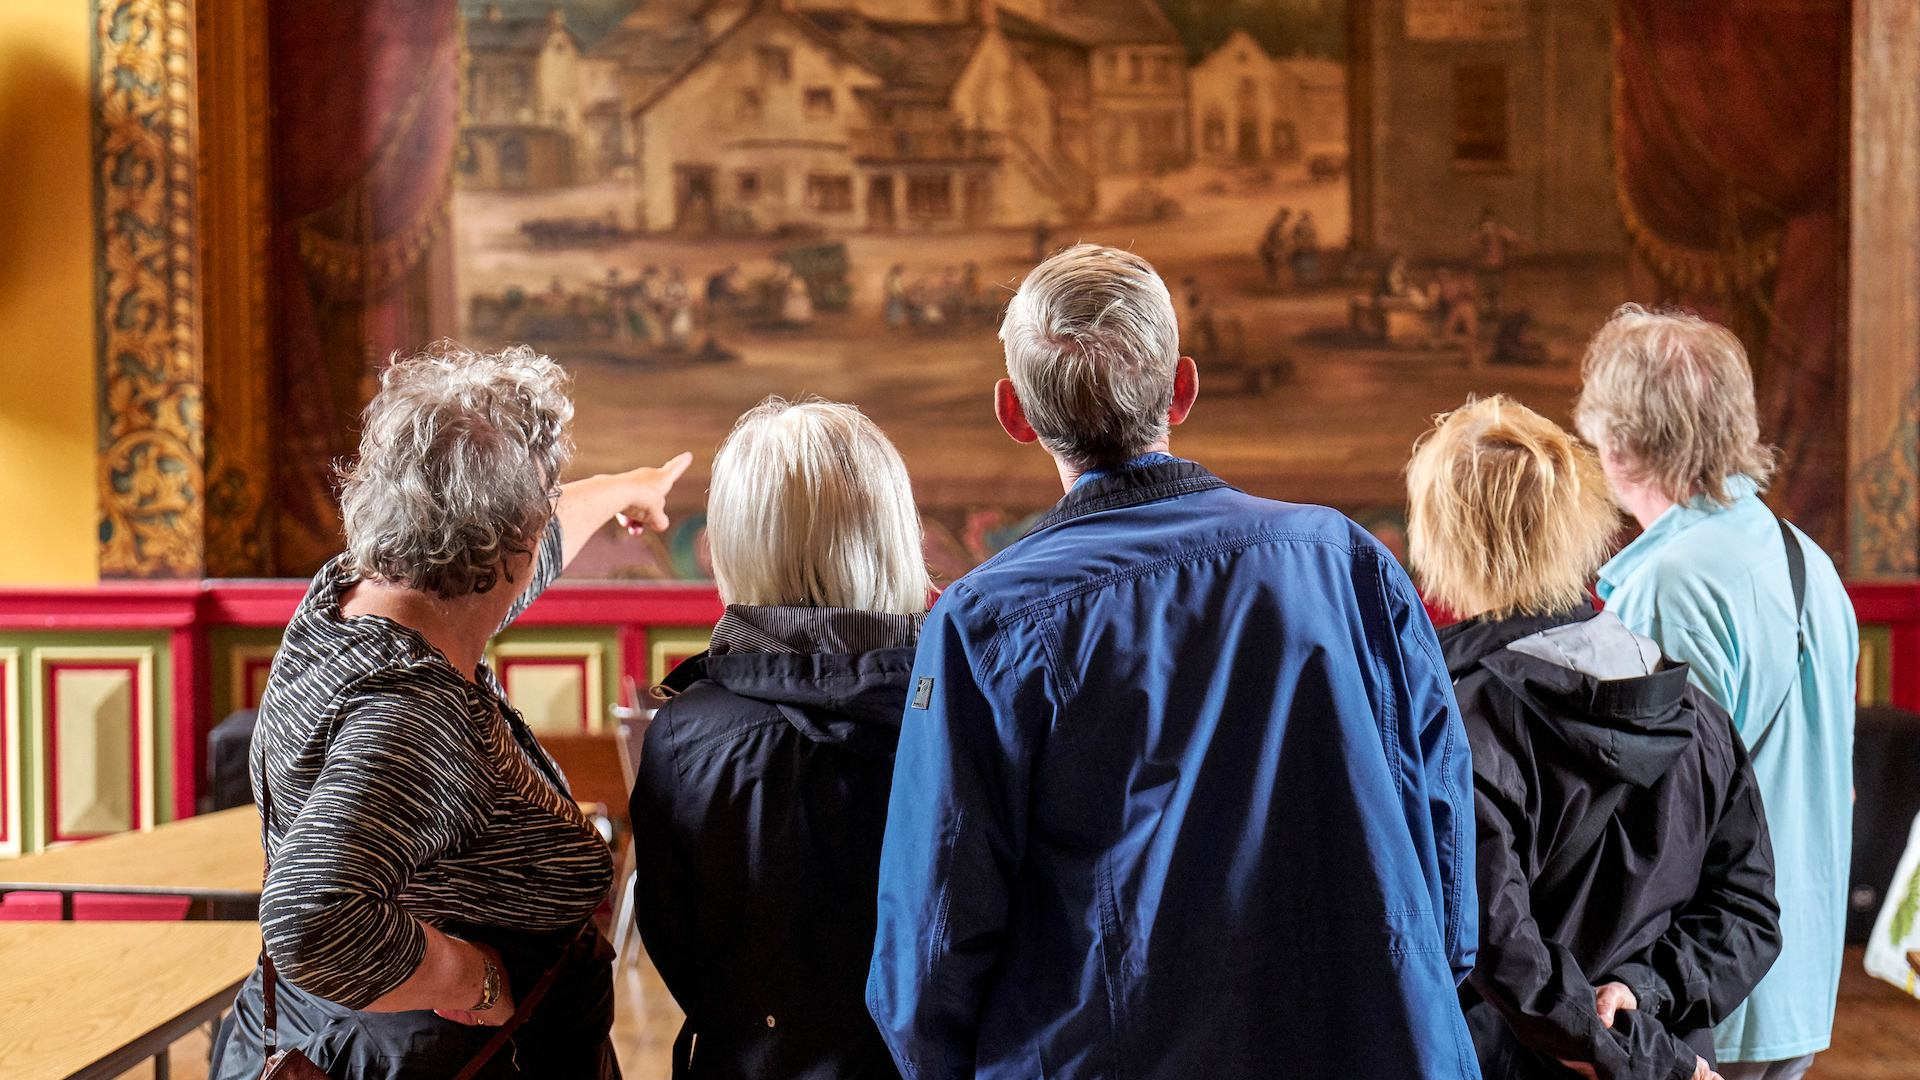 Group of elderly people in a museum looking at a work.